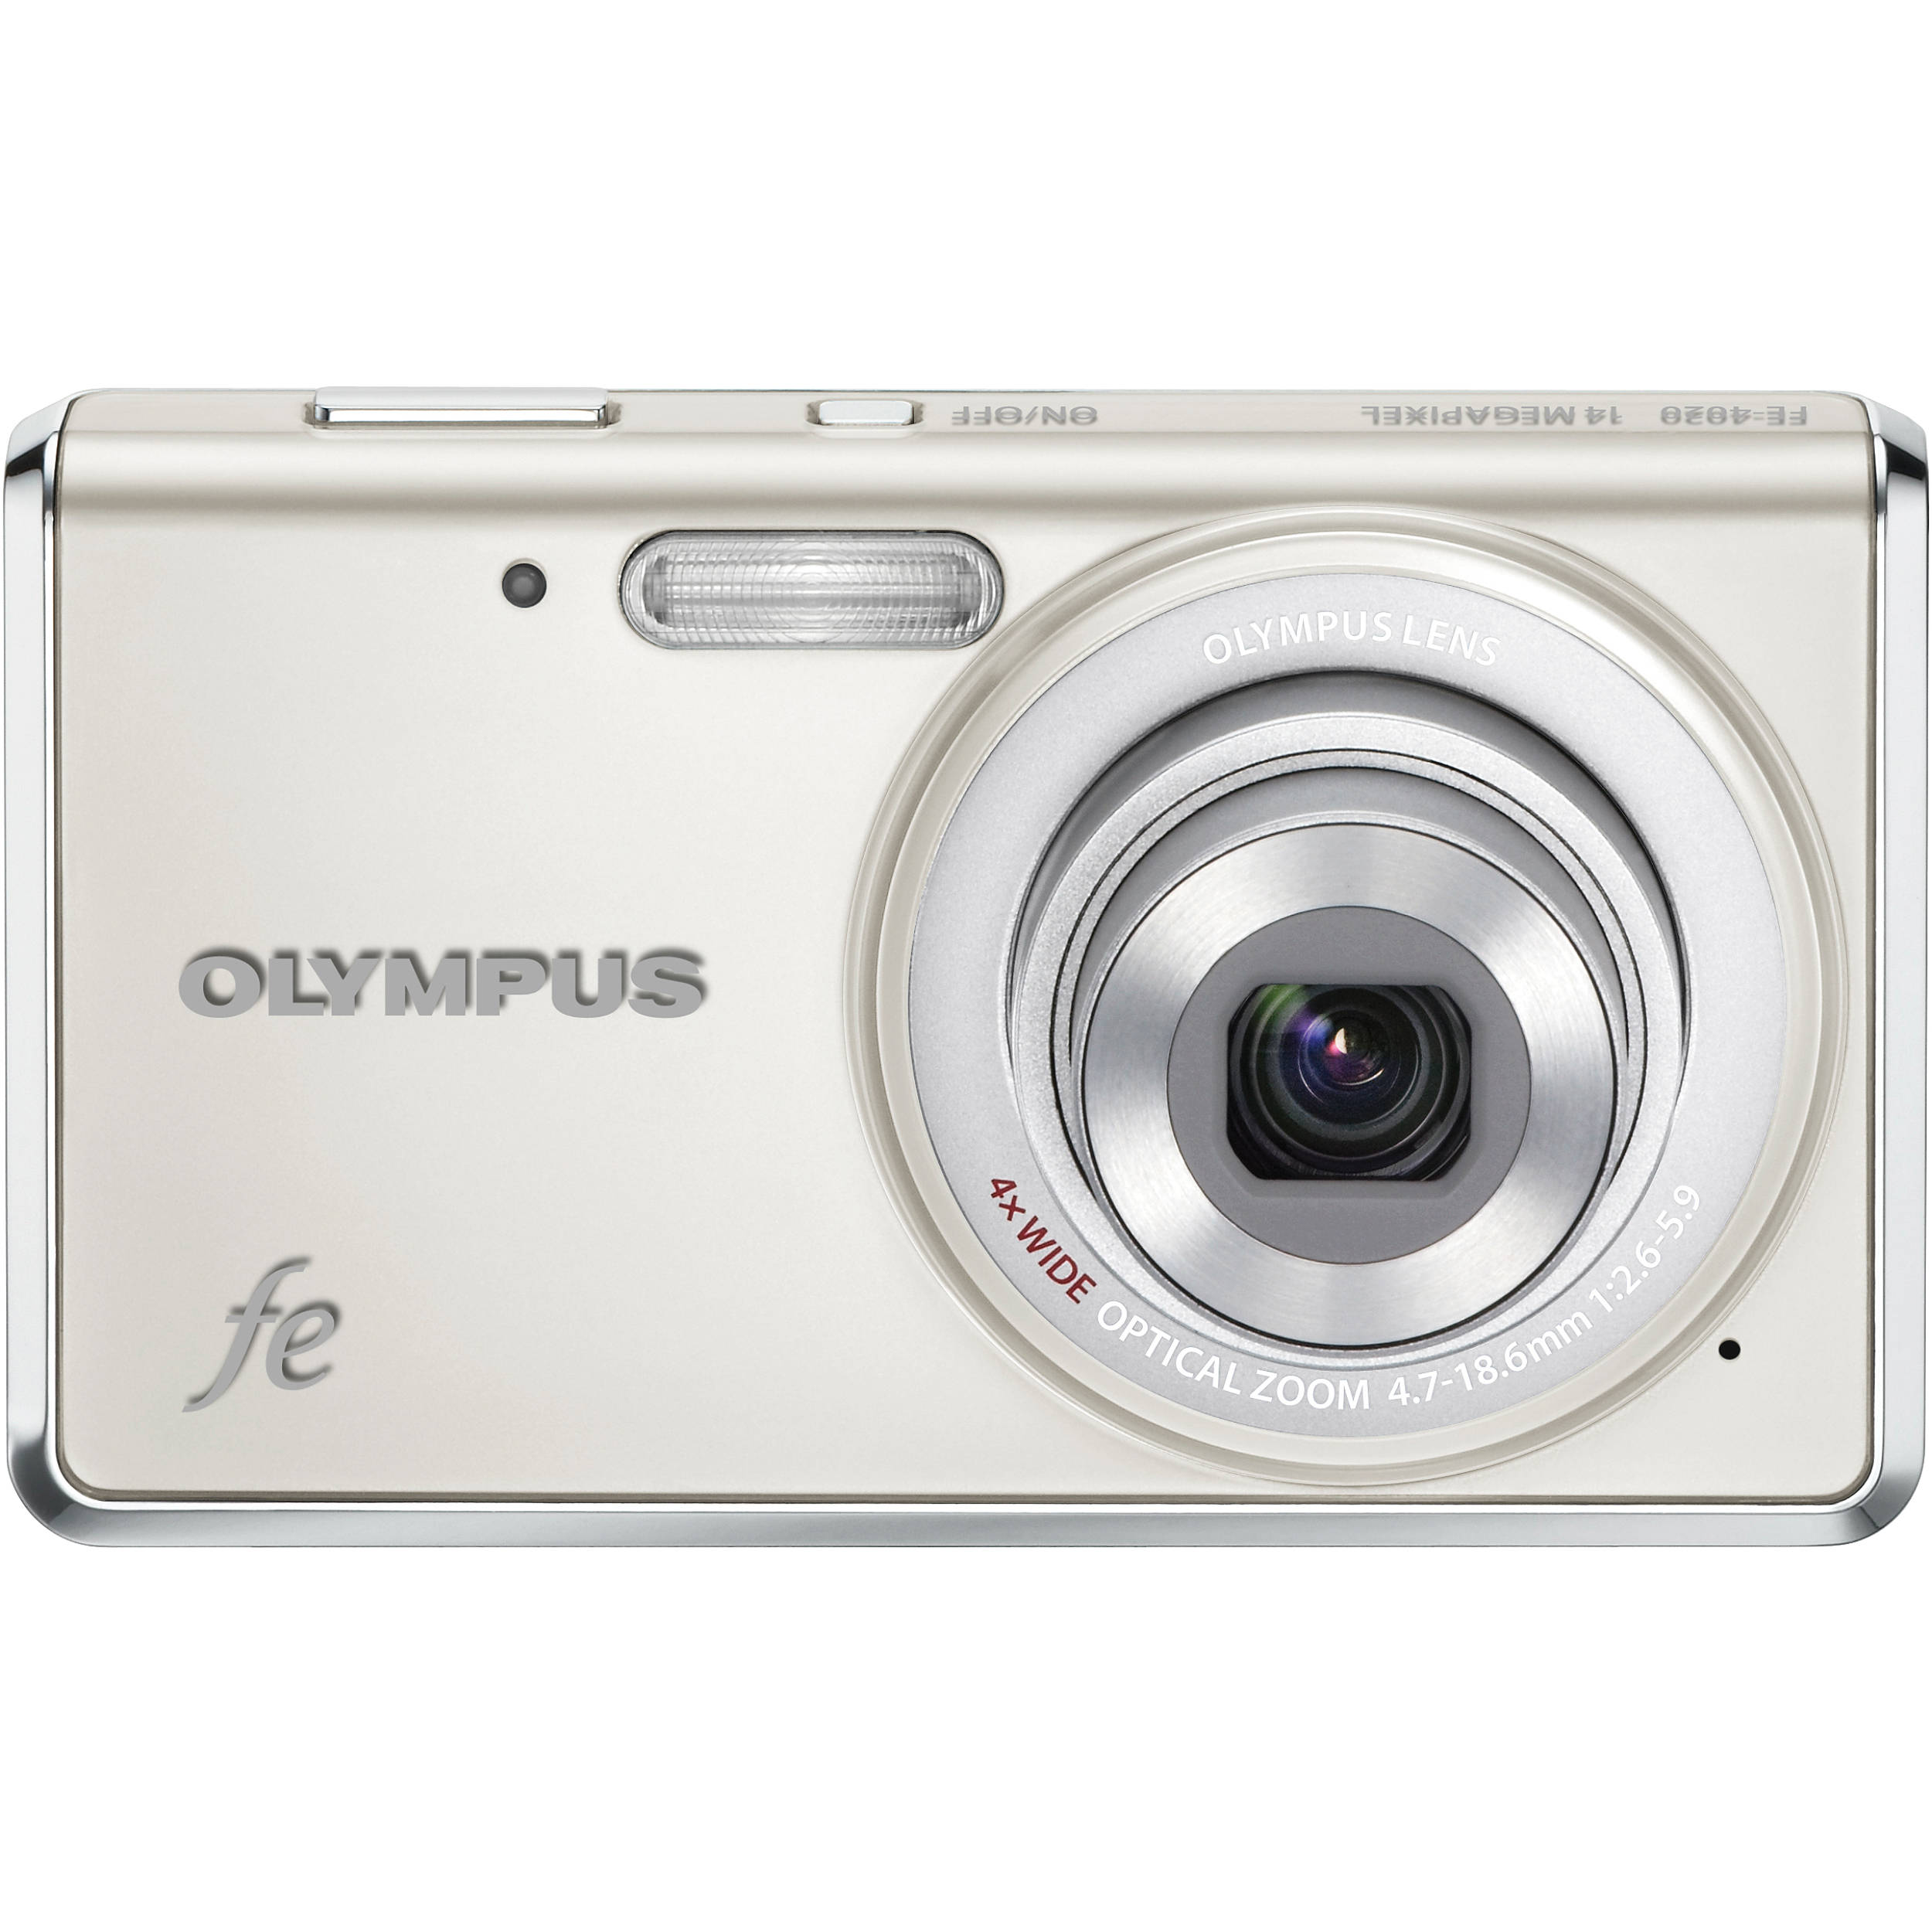 olympus fe 4020 digital camera pearl white 227505 b h photo rh bhphotovideo com Olympus Fe Camera Charger Olympus Fe 4020 Battery Charger